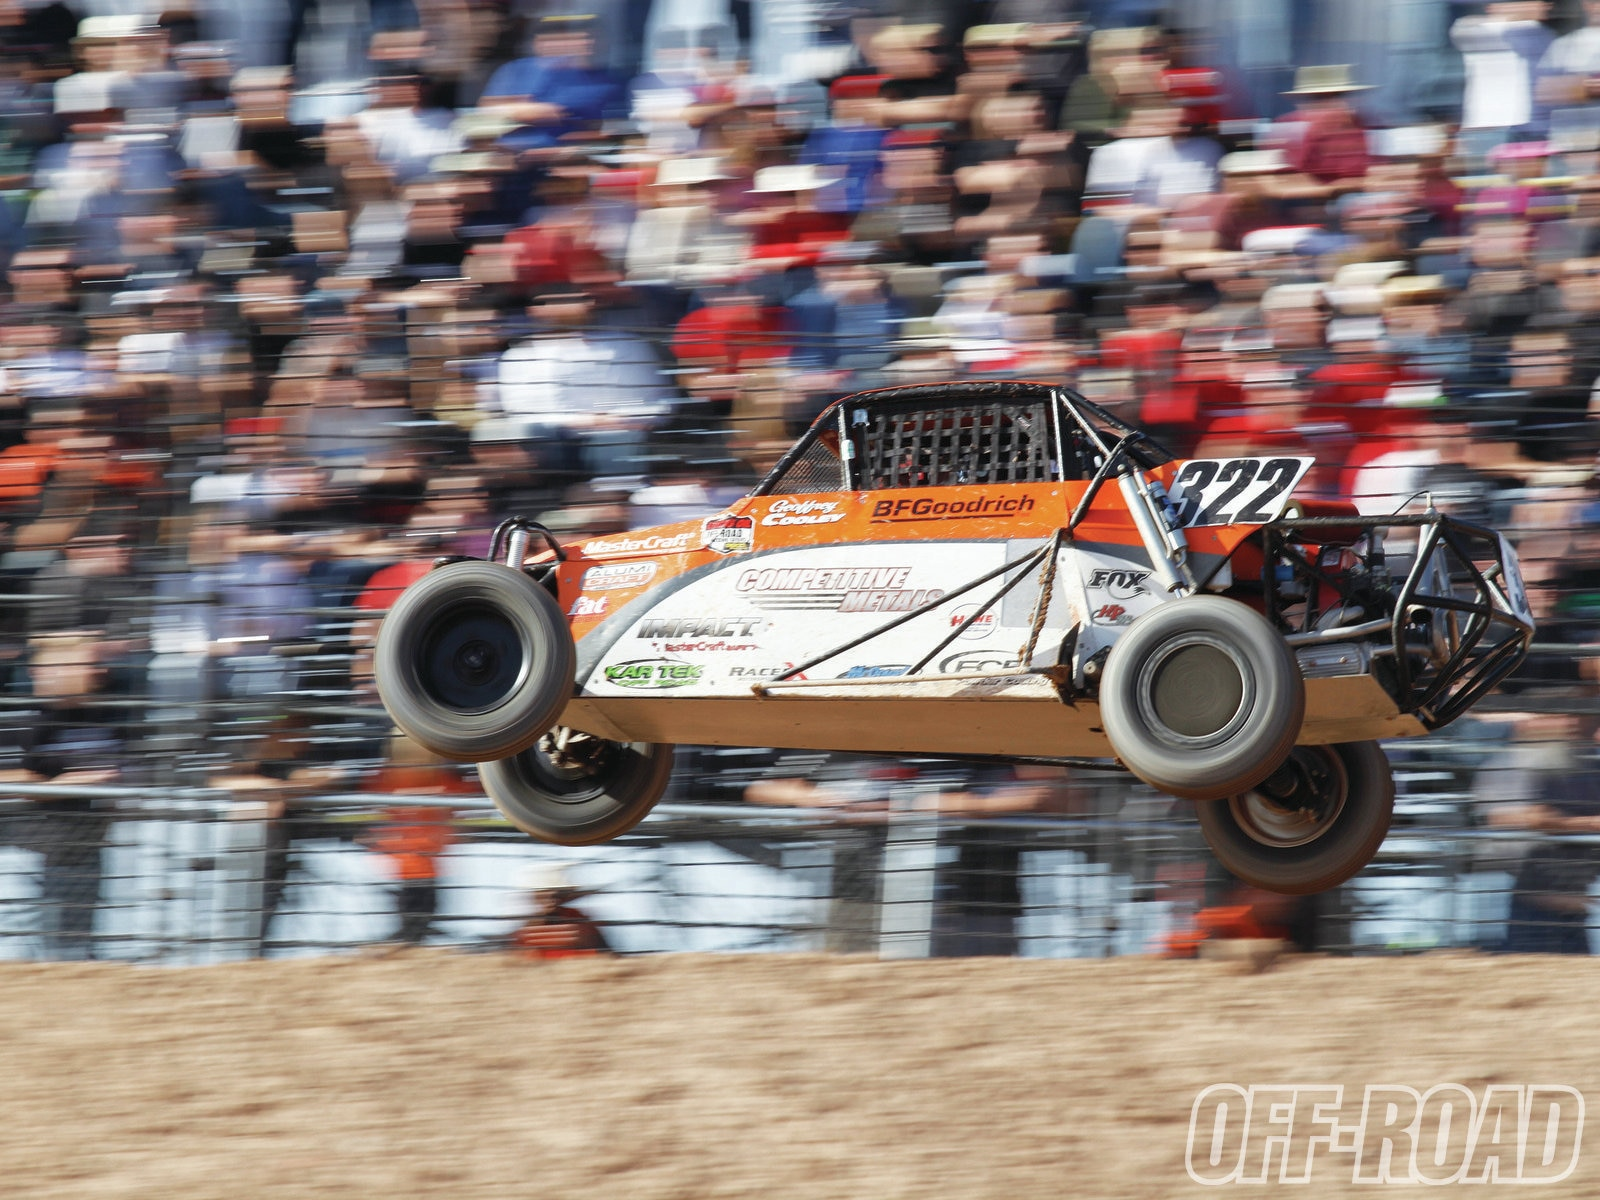 1204or 12+lucas oil off road racing+geoffrey cooleys buggy